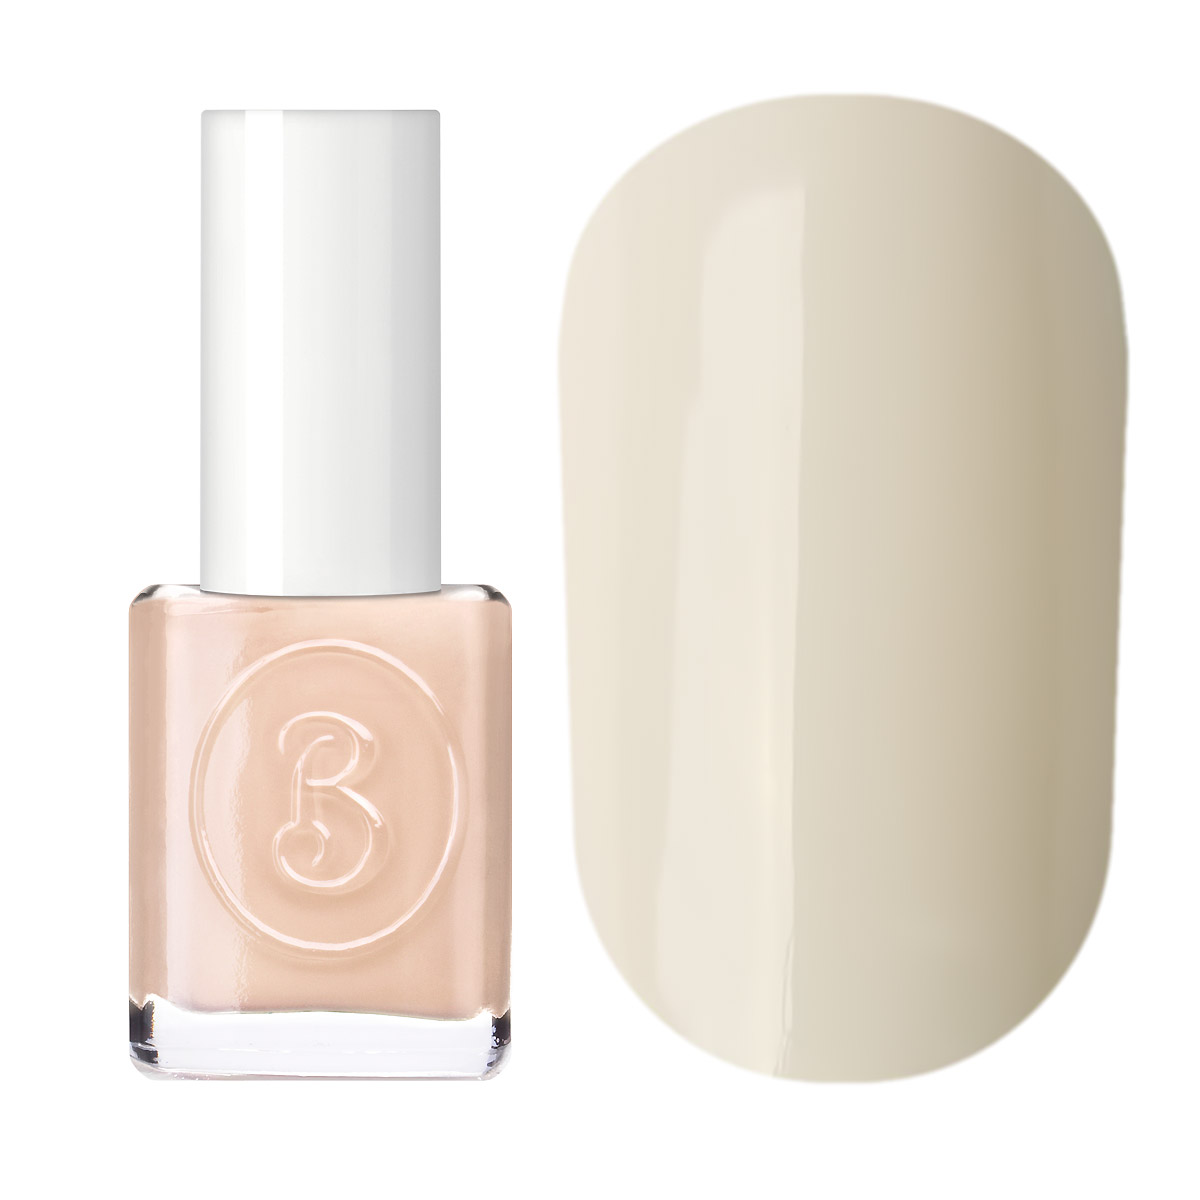 Berenice Oxygen Nail Polish / 35 beige french